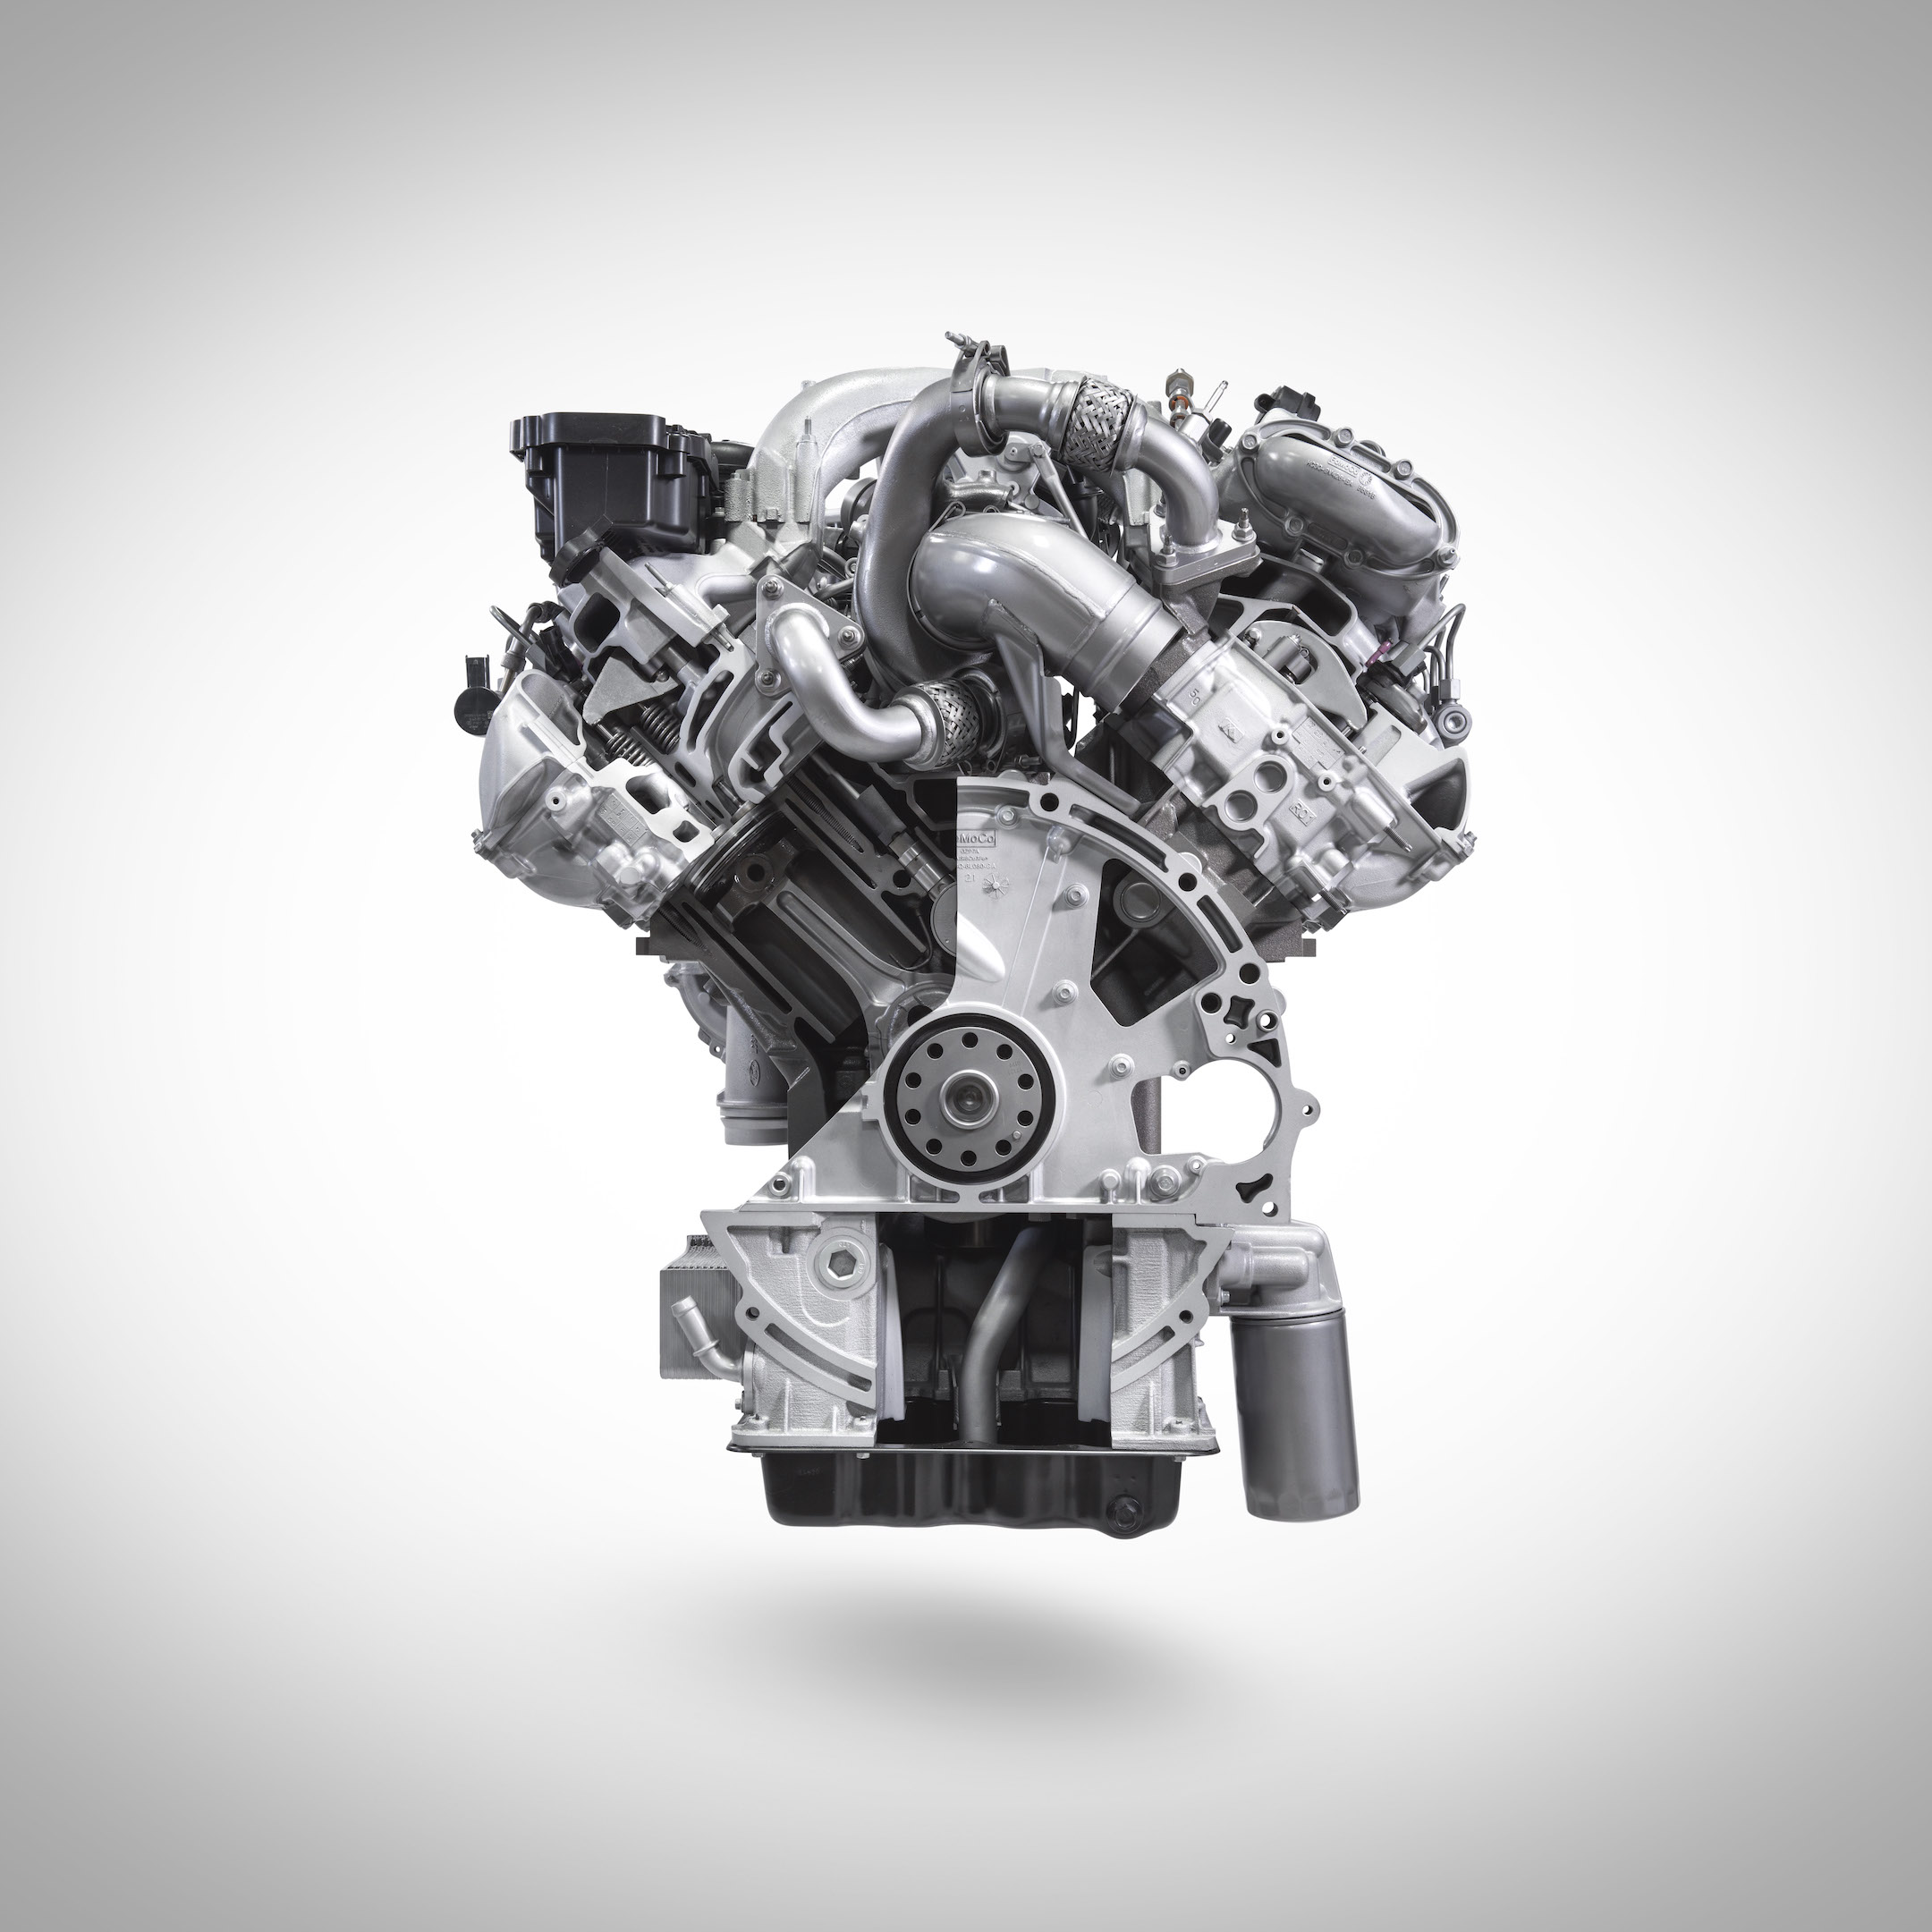 6.7L Power Stroke diesel V8 third-gen